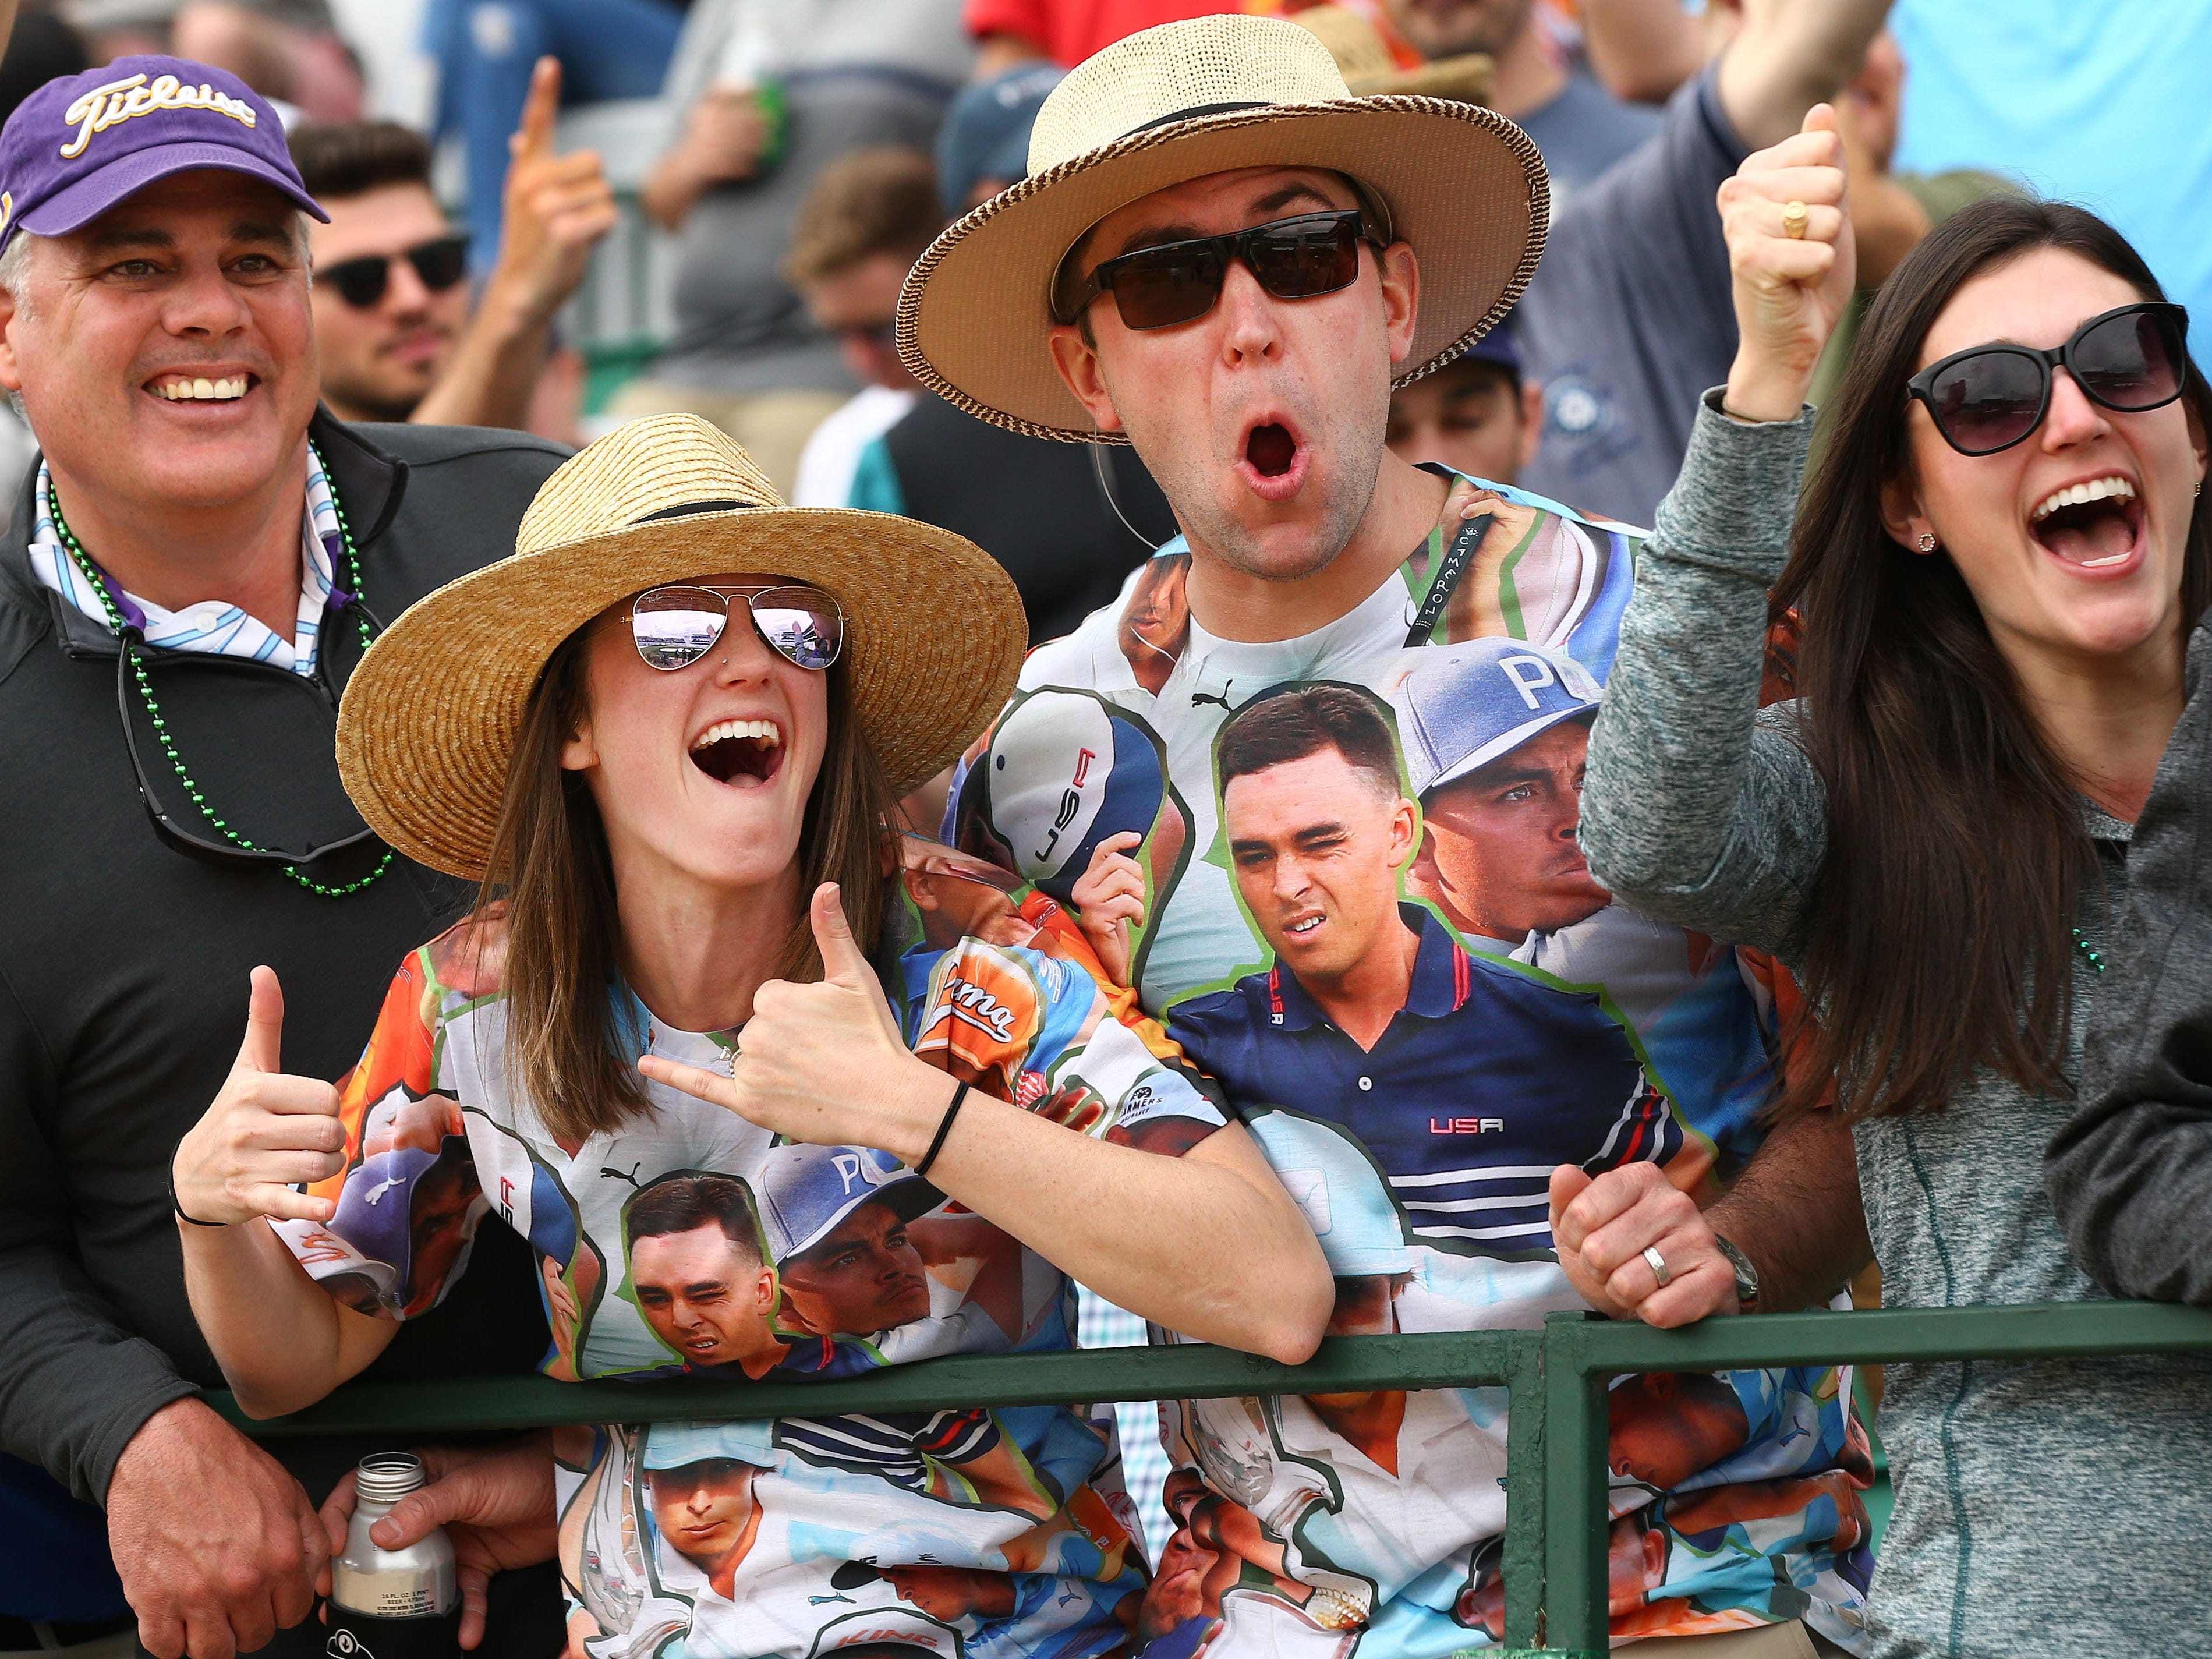 Anna and Patrick Stutler from Dallas, Texas wear Rickie Fowler outfits on the 16th hole during third round action on Feb. 2 during the Waste Management Phoenix Open at the TPC Scottsdale Stadium Course.